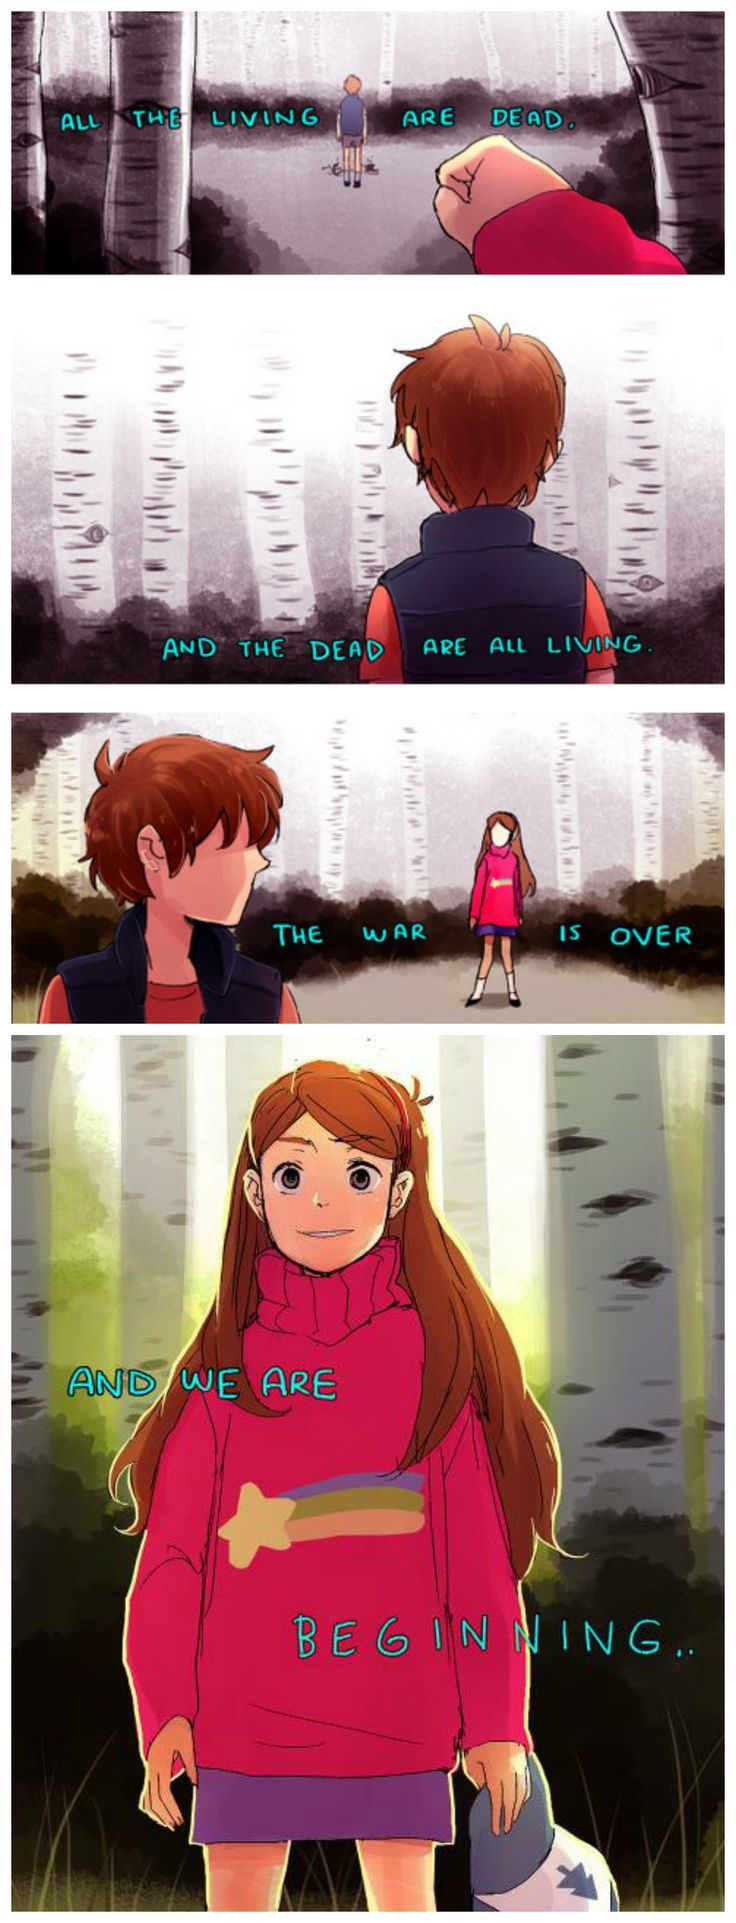 1000 Images About Gravity Falls On Pinterest Texts Alex Hirsch